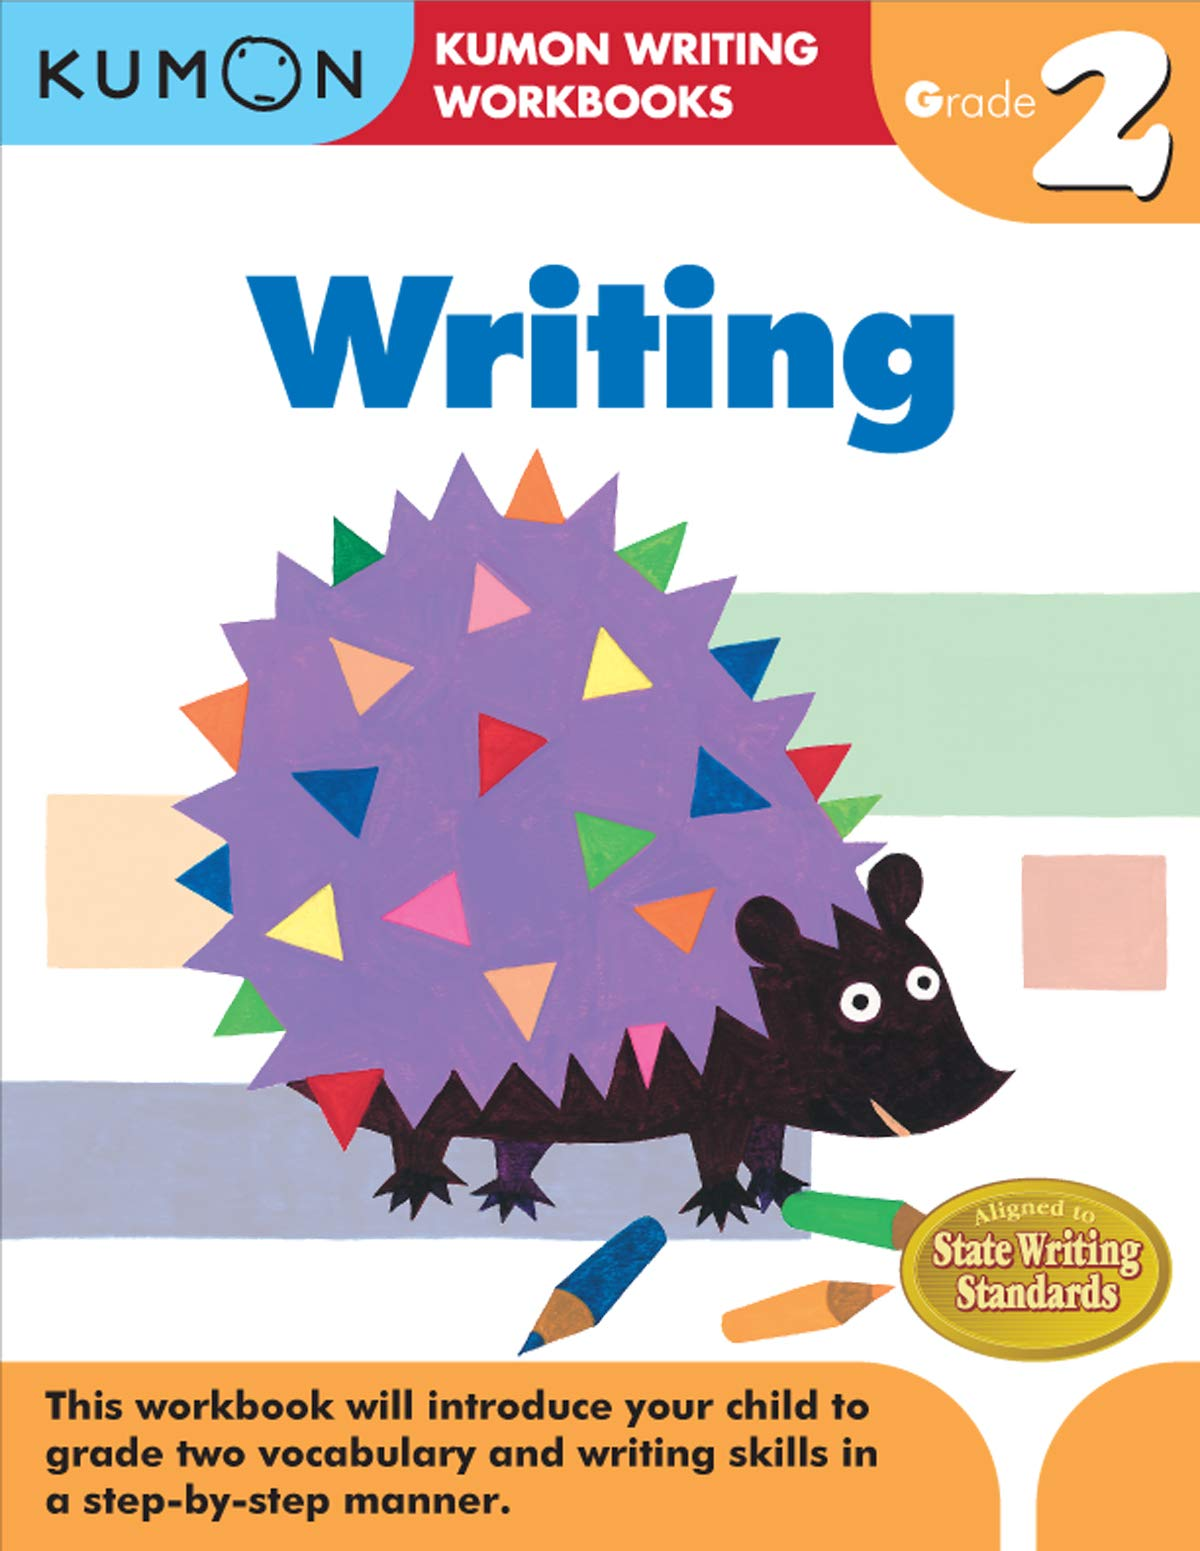 Buy Grade 2 Writing Kumon Writing Workbooks Book Online At Low Prices In India Grade 2 Writing Kumon Writing Workbooks Reviews Ratings Amazon In [ 1551 x 1200 Pixel ]